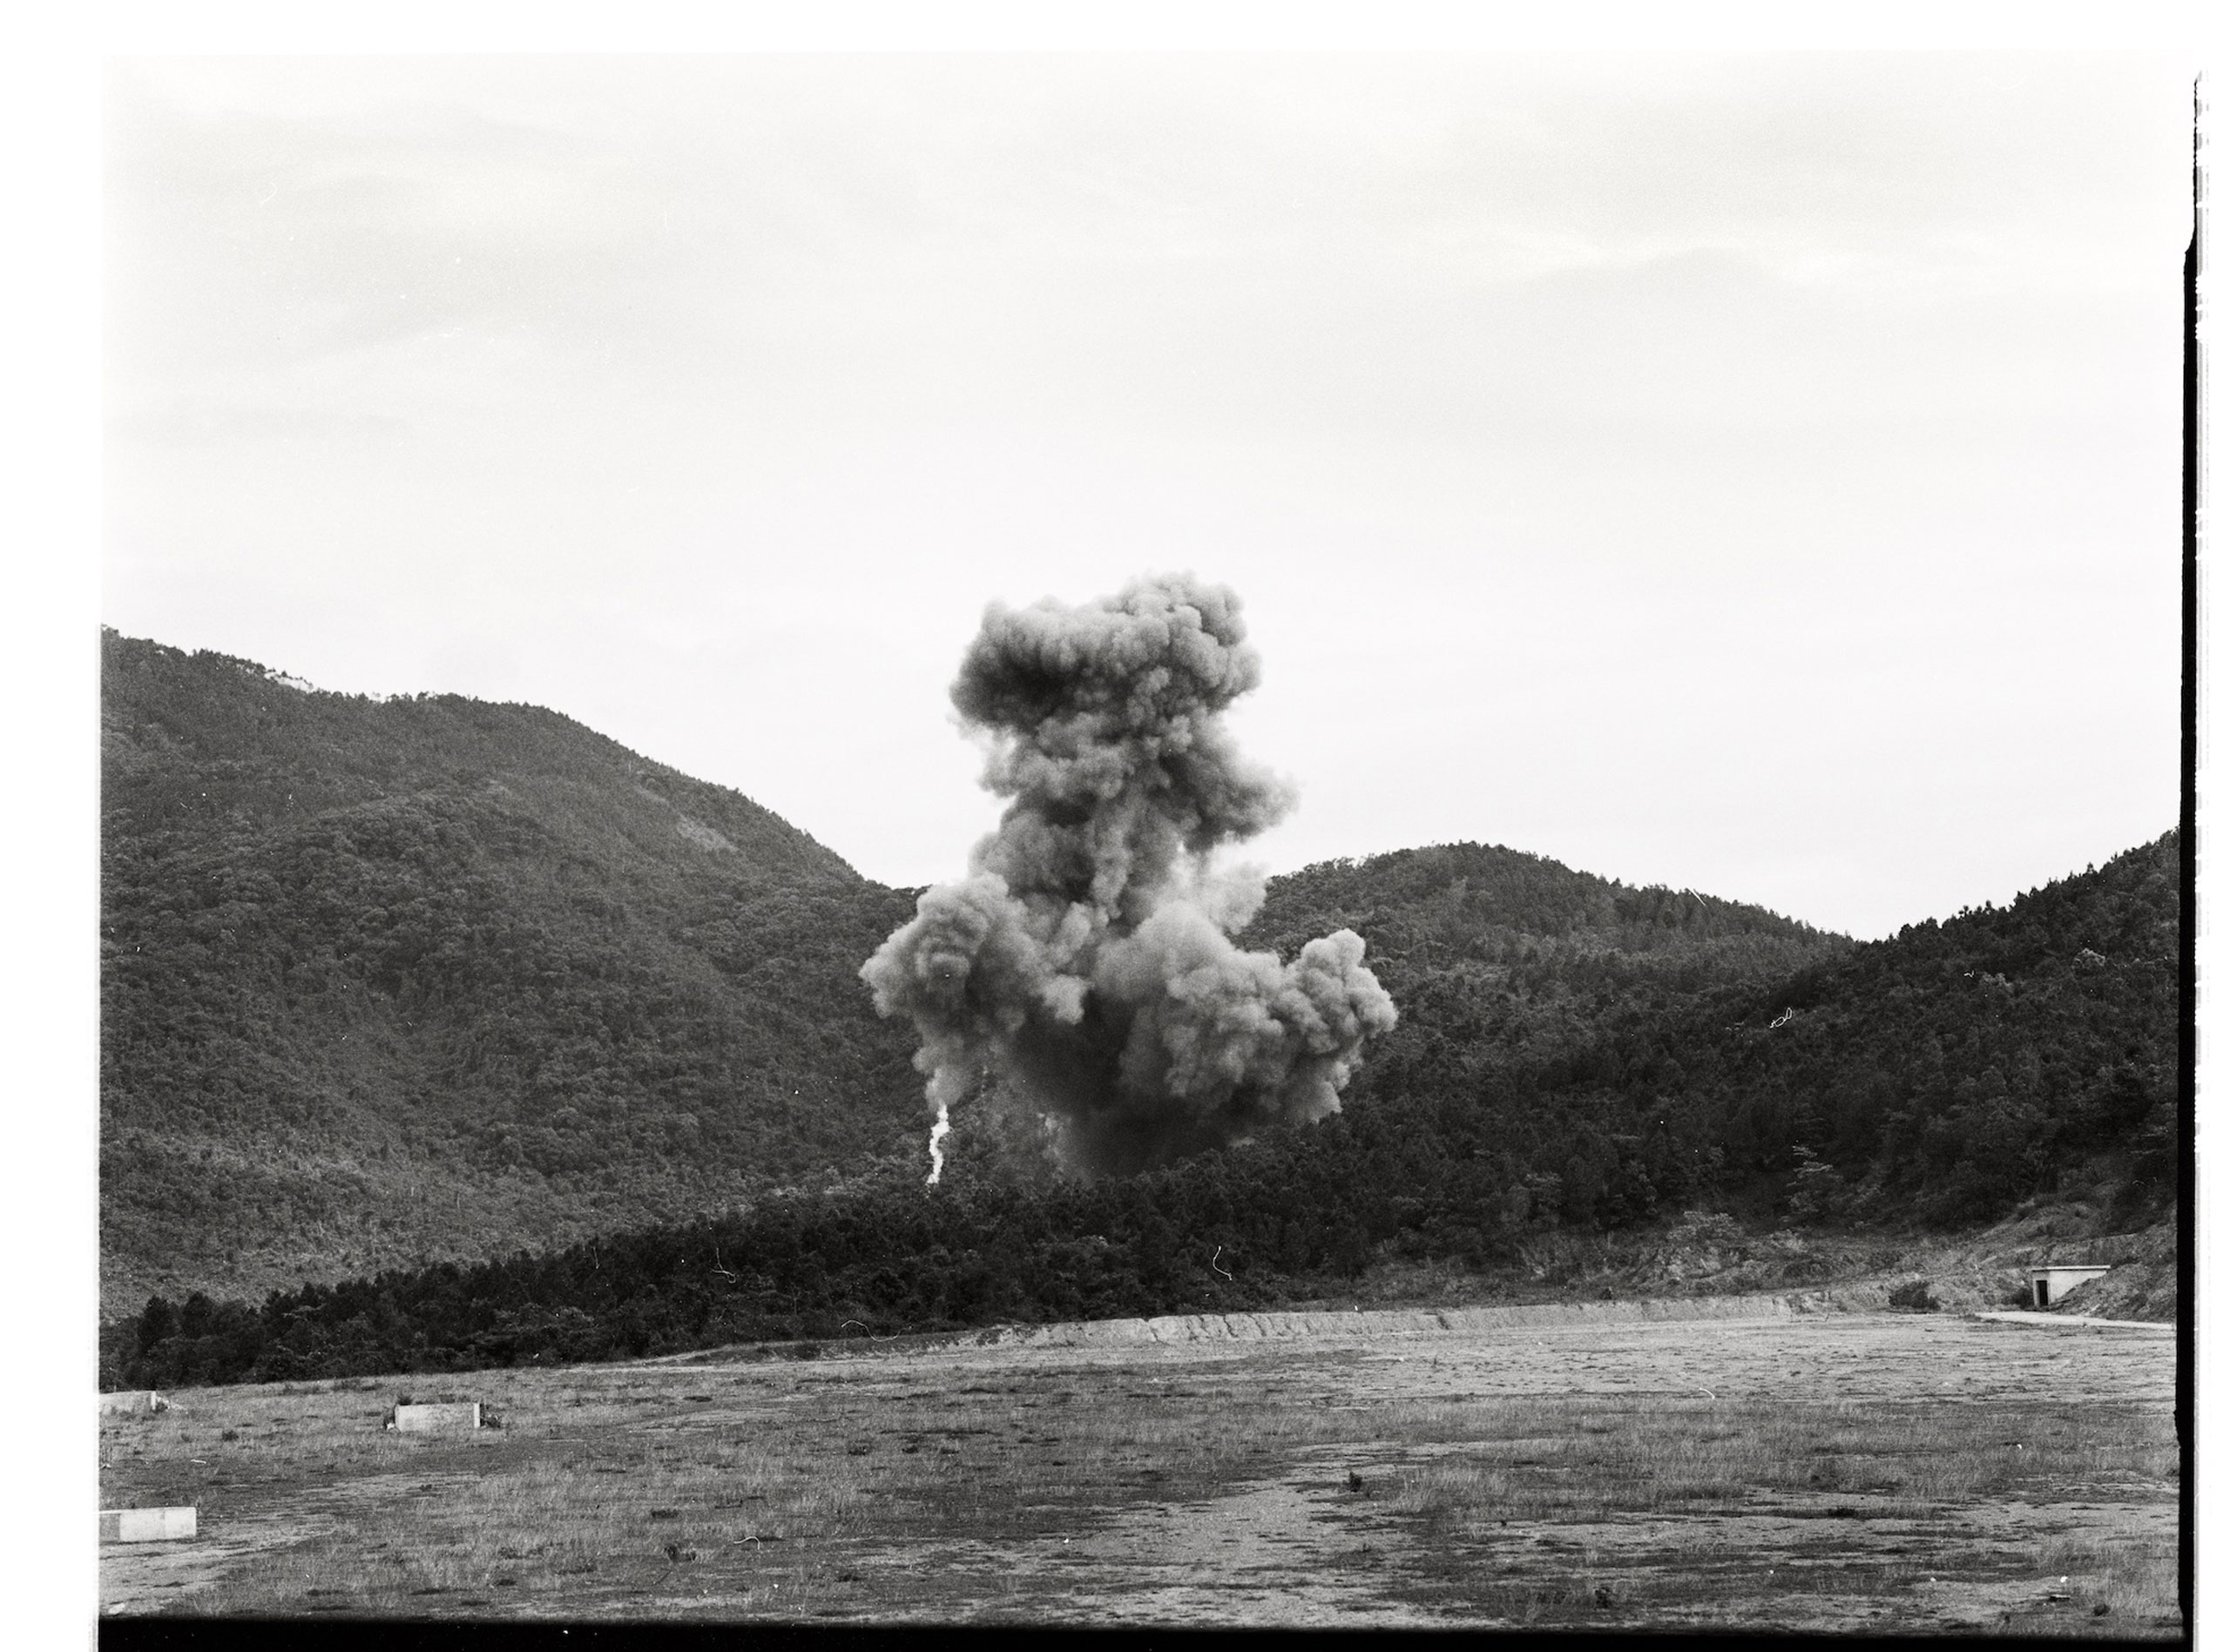 Vietnam 2014 Controlled explosion of Unexploded Ordinance (UXO)